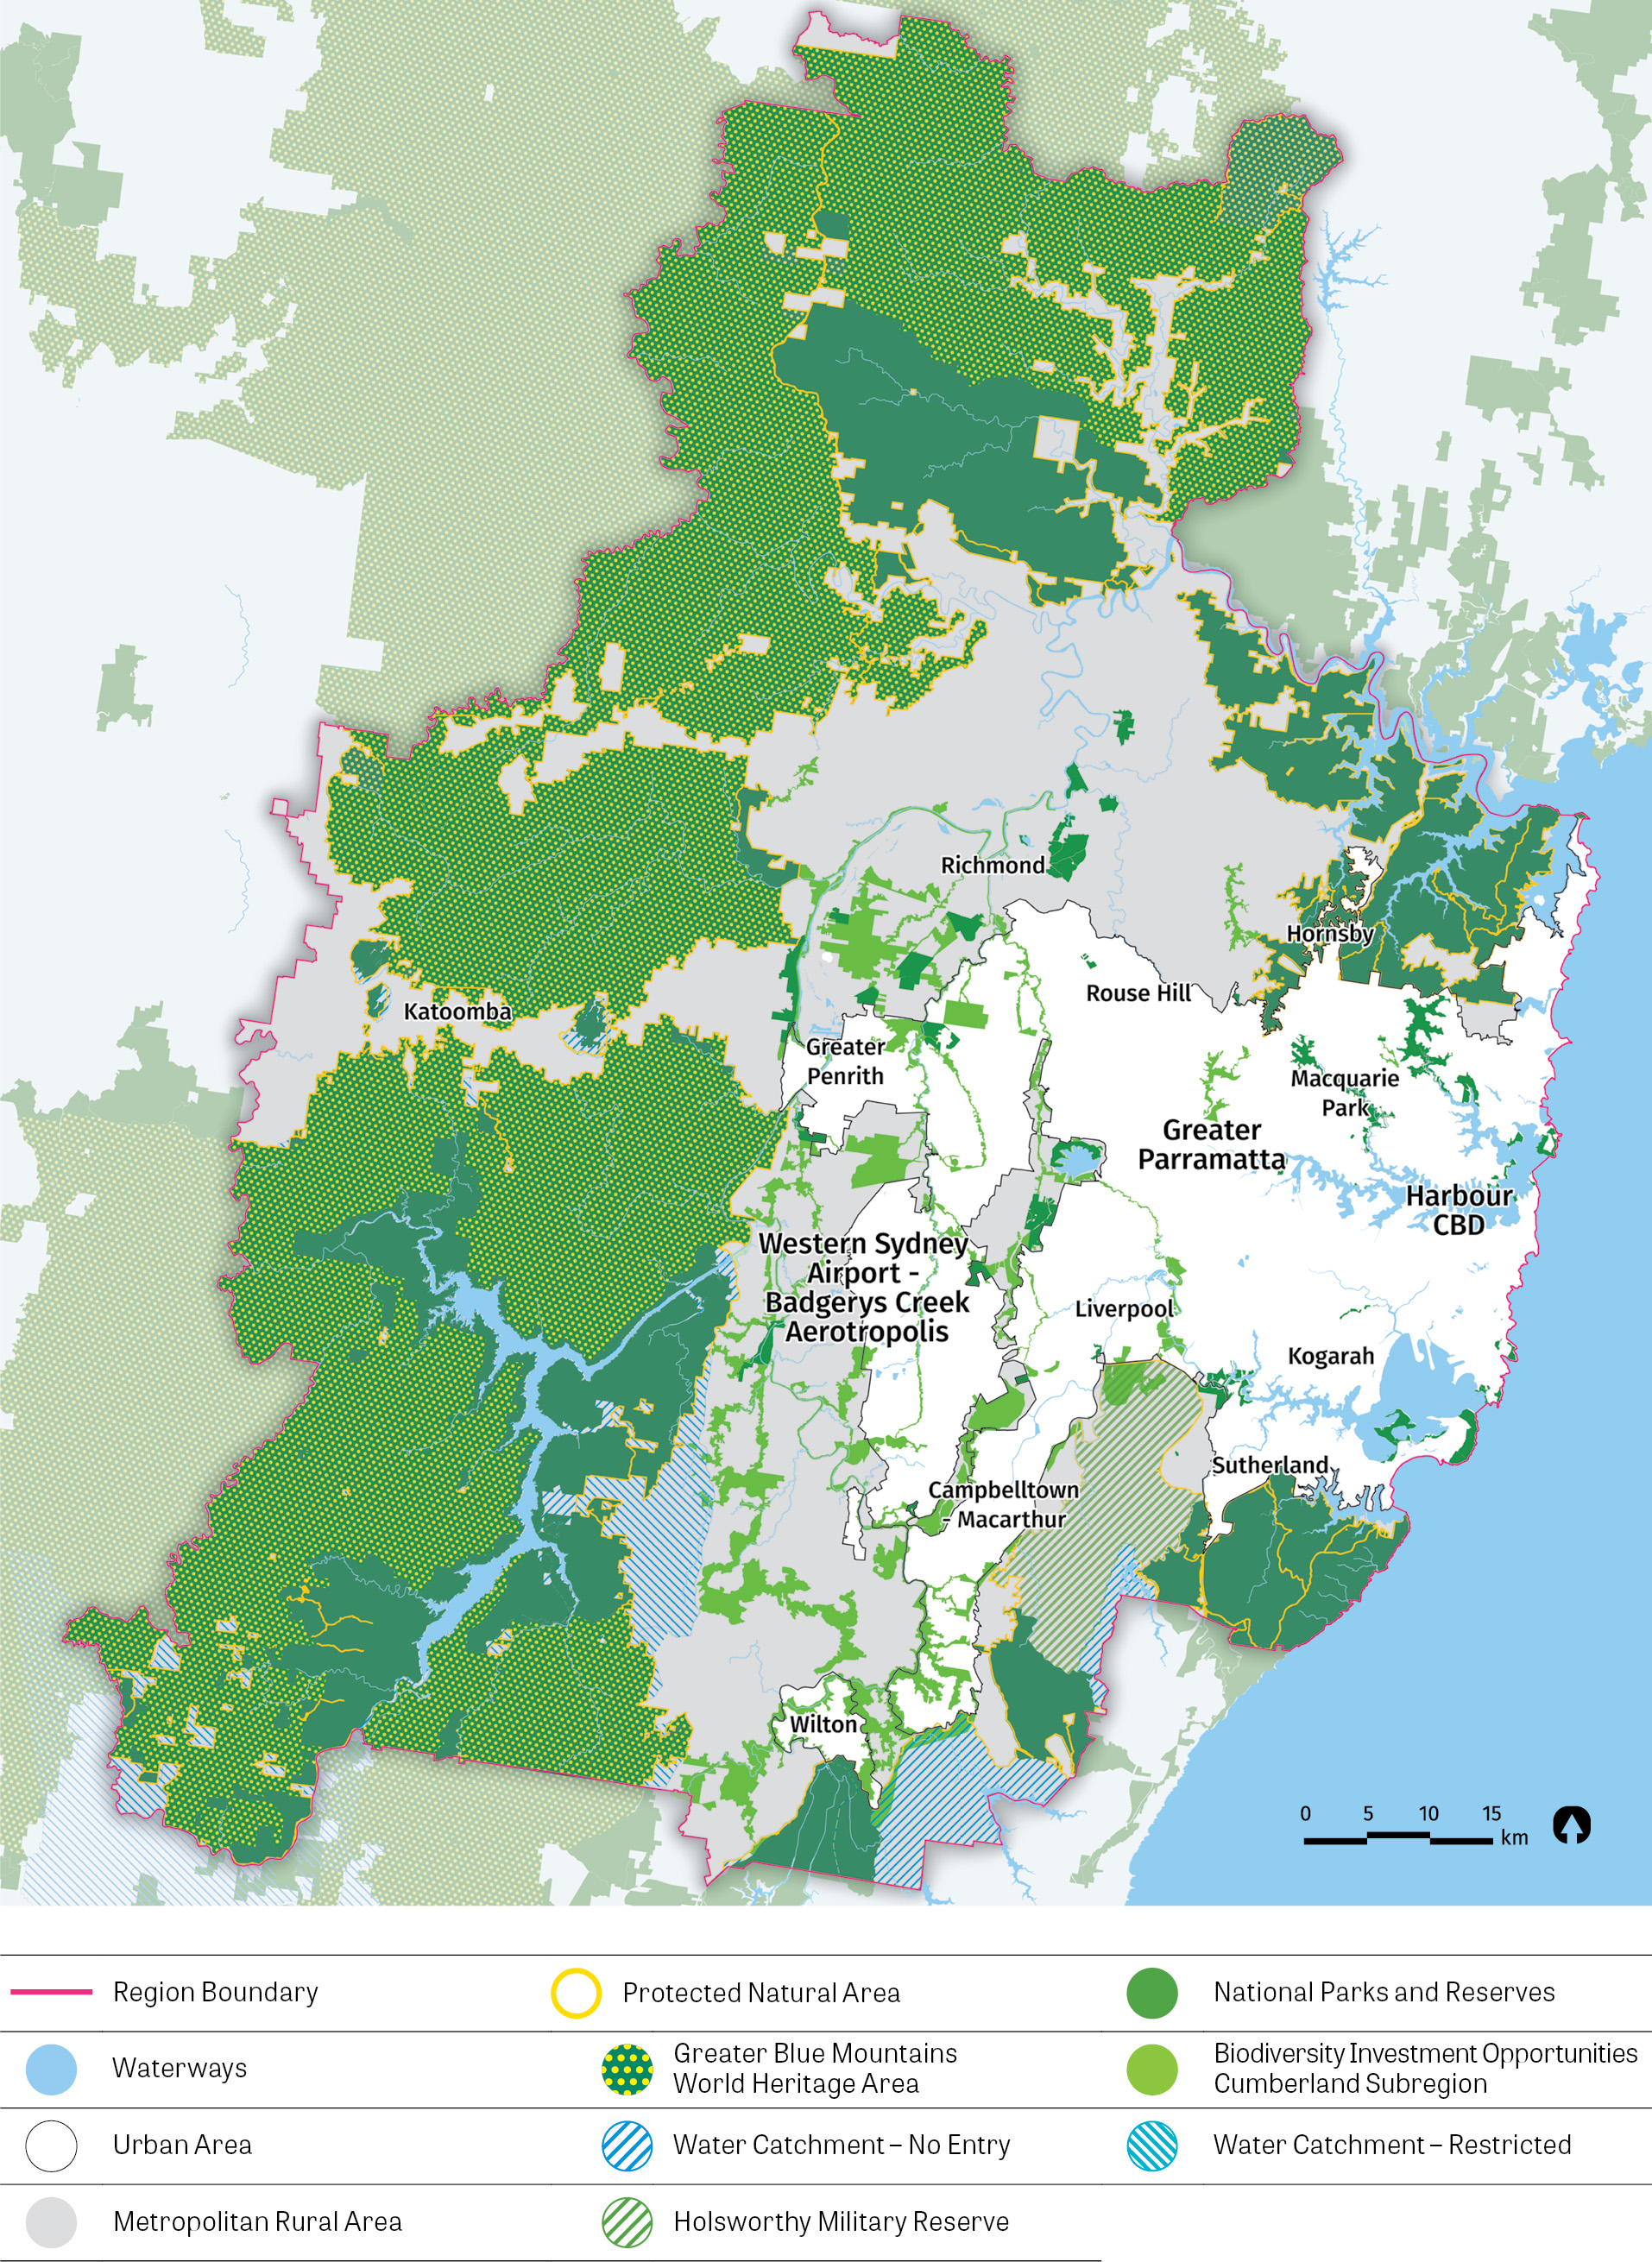 Map showing Protected Natural Area and Metropolitan Rural Area - including Water Catchments, Waterways, National Parks and Biodiversity Investment Opportunitities.